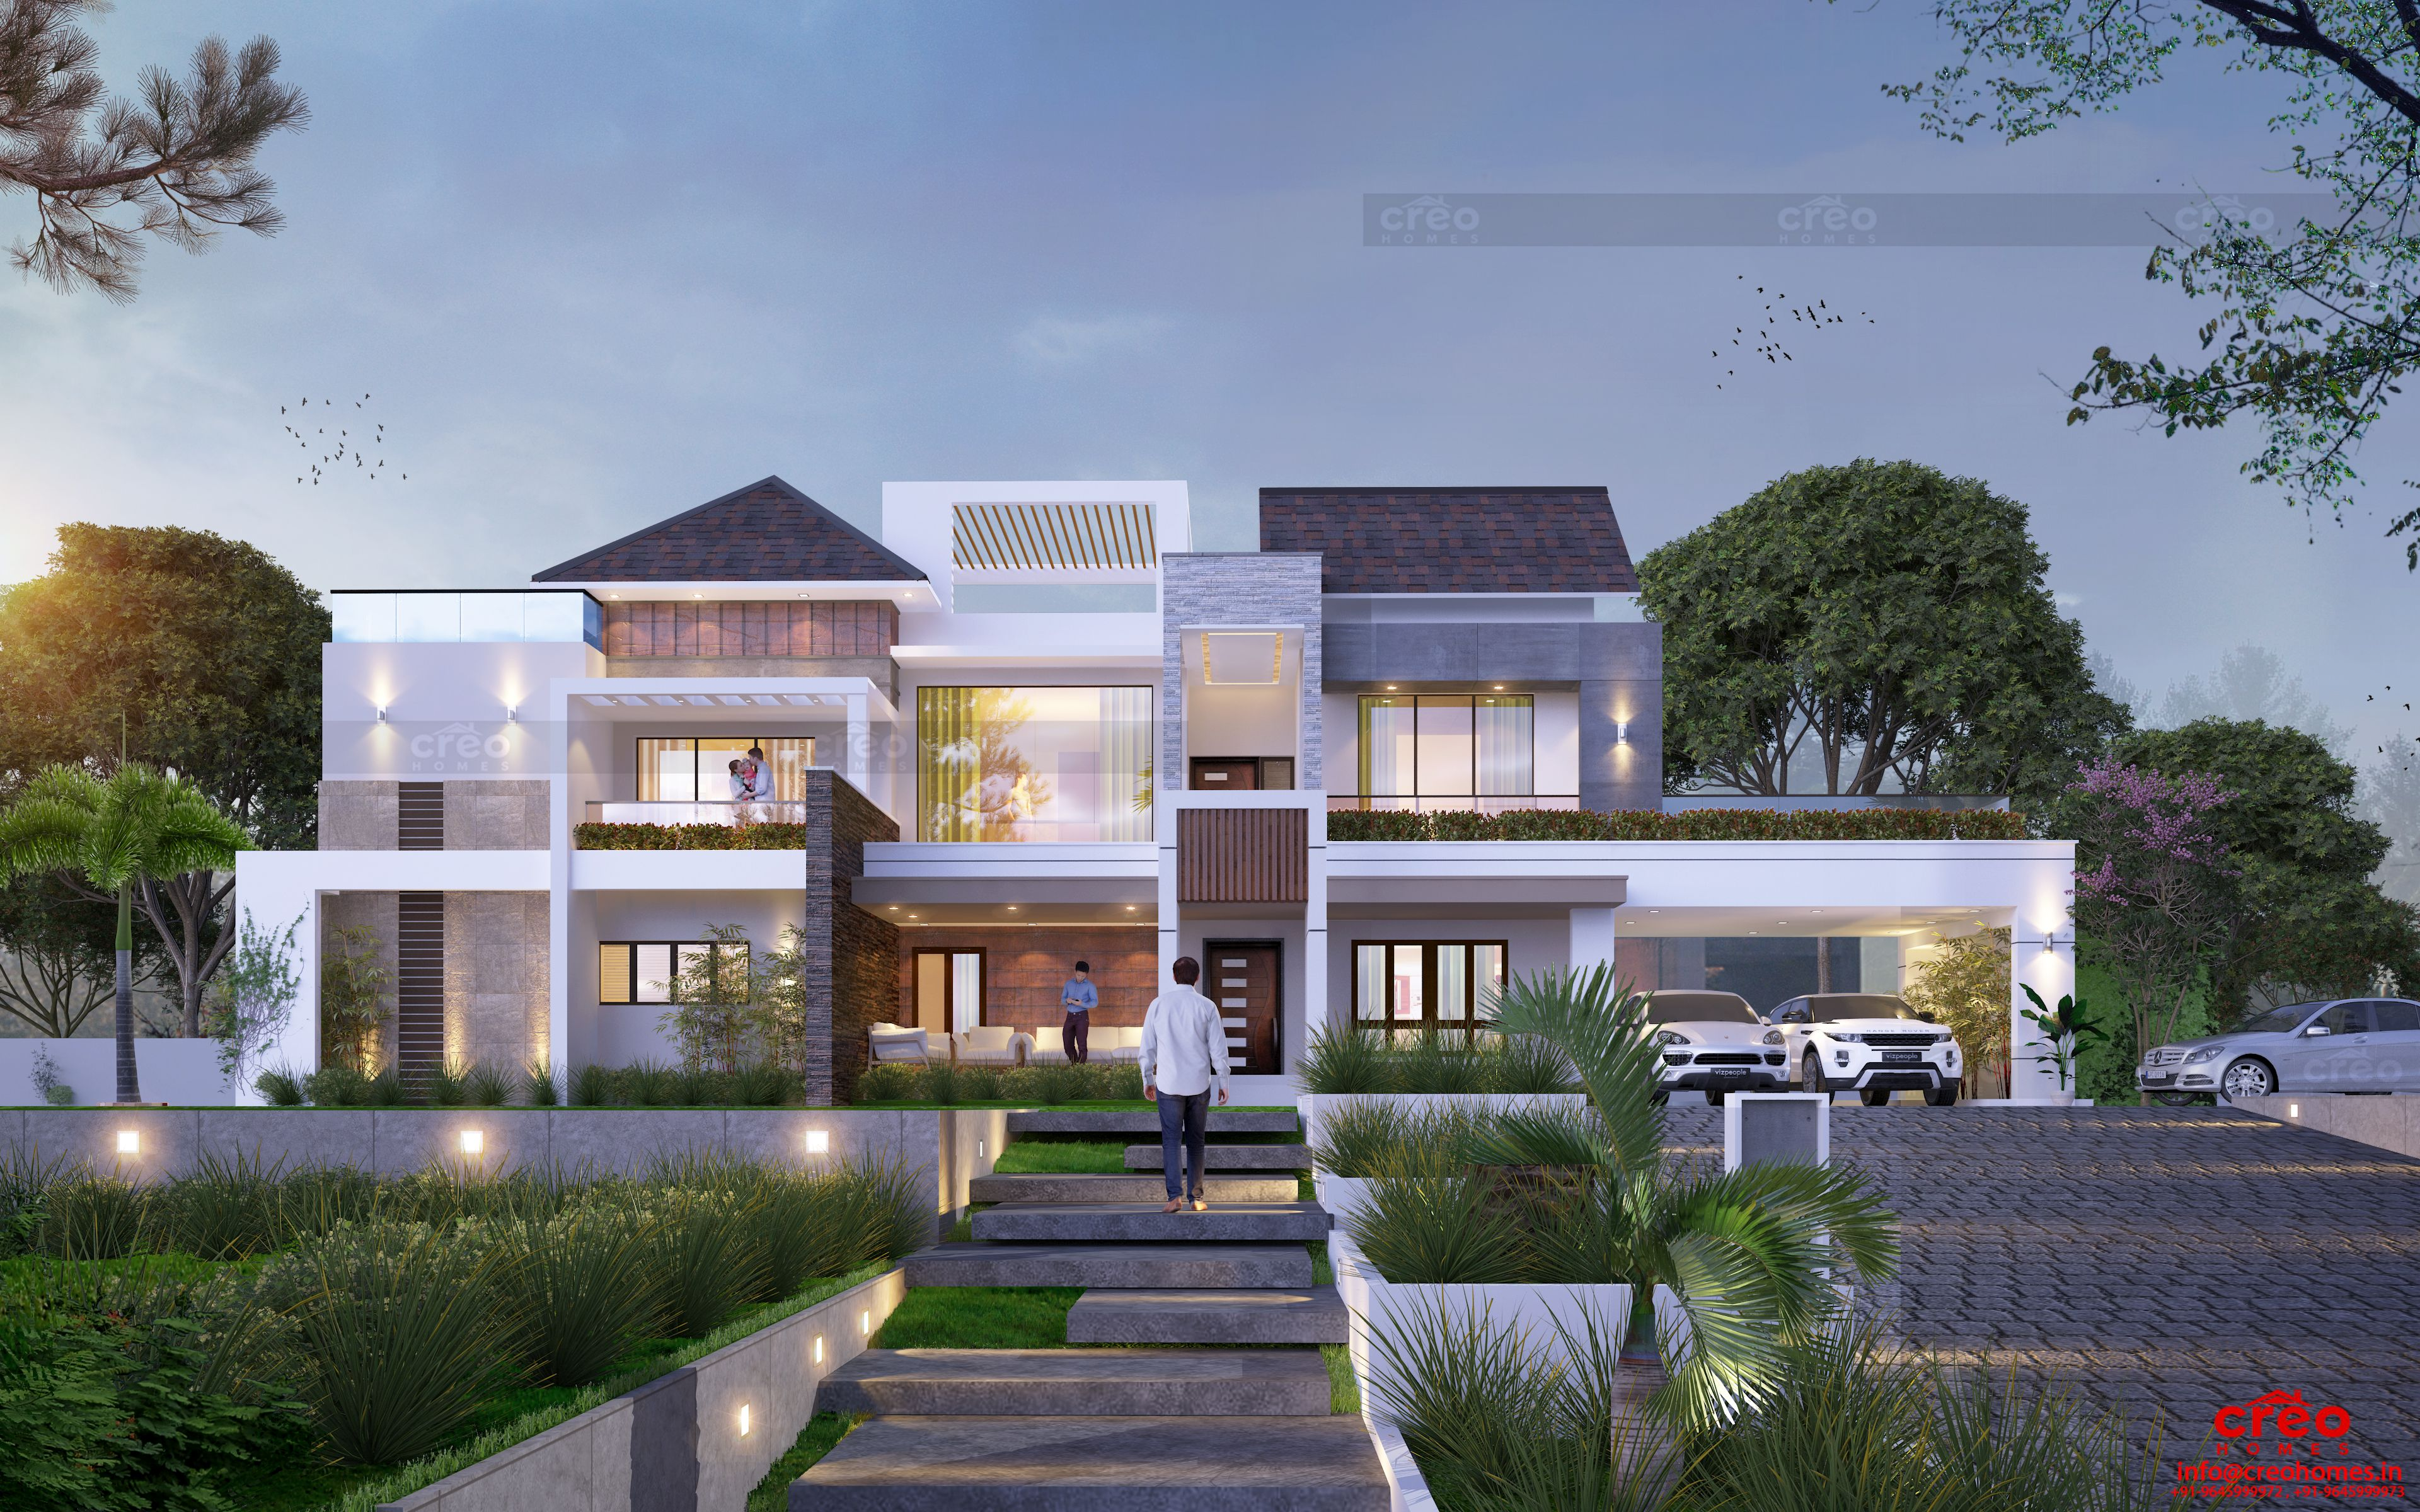 Creo Homes The Best Interior Designers In Kochi Has Been Recognized Nationwide For Its Ex House Architecture Design House Front Design House Designs Exterior